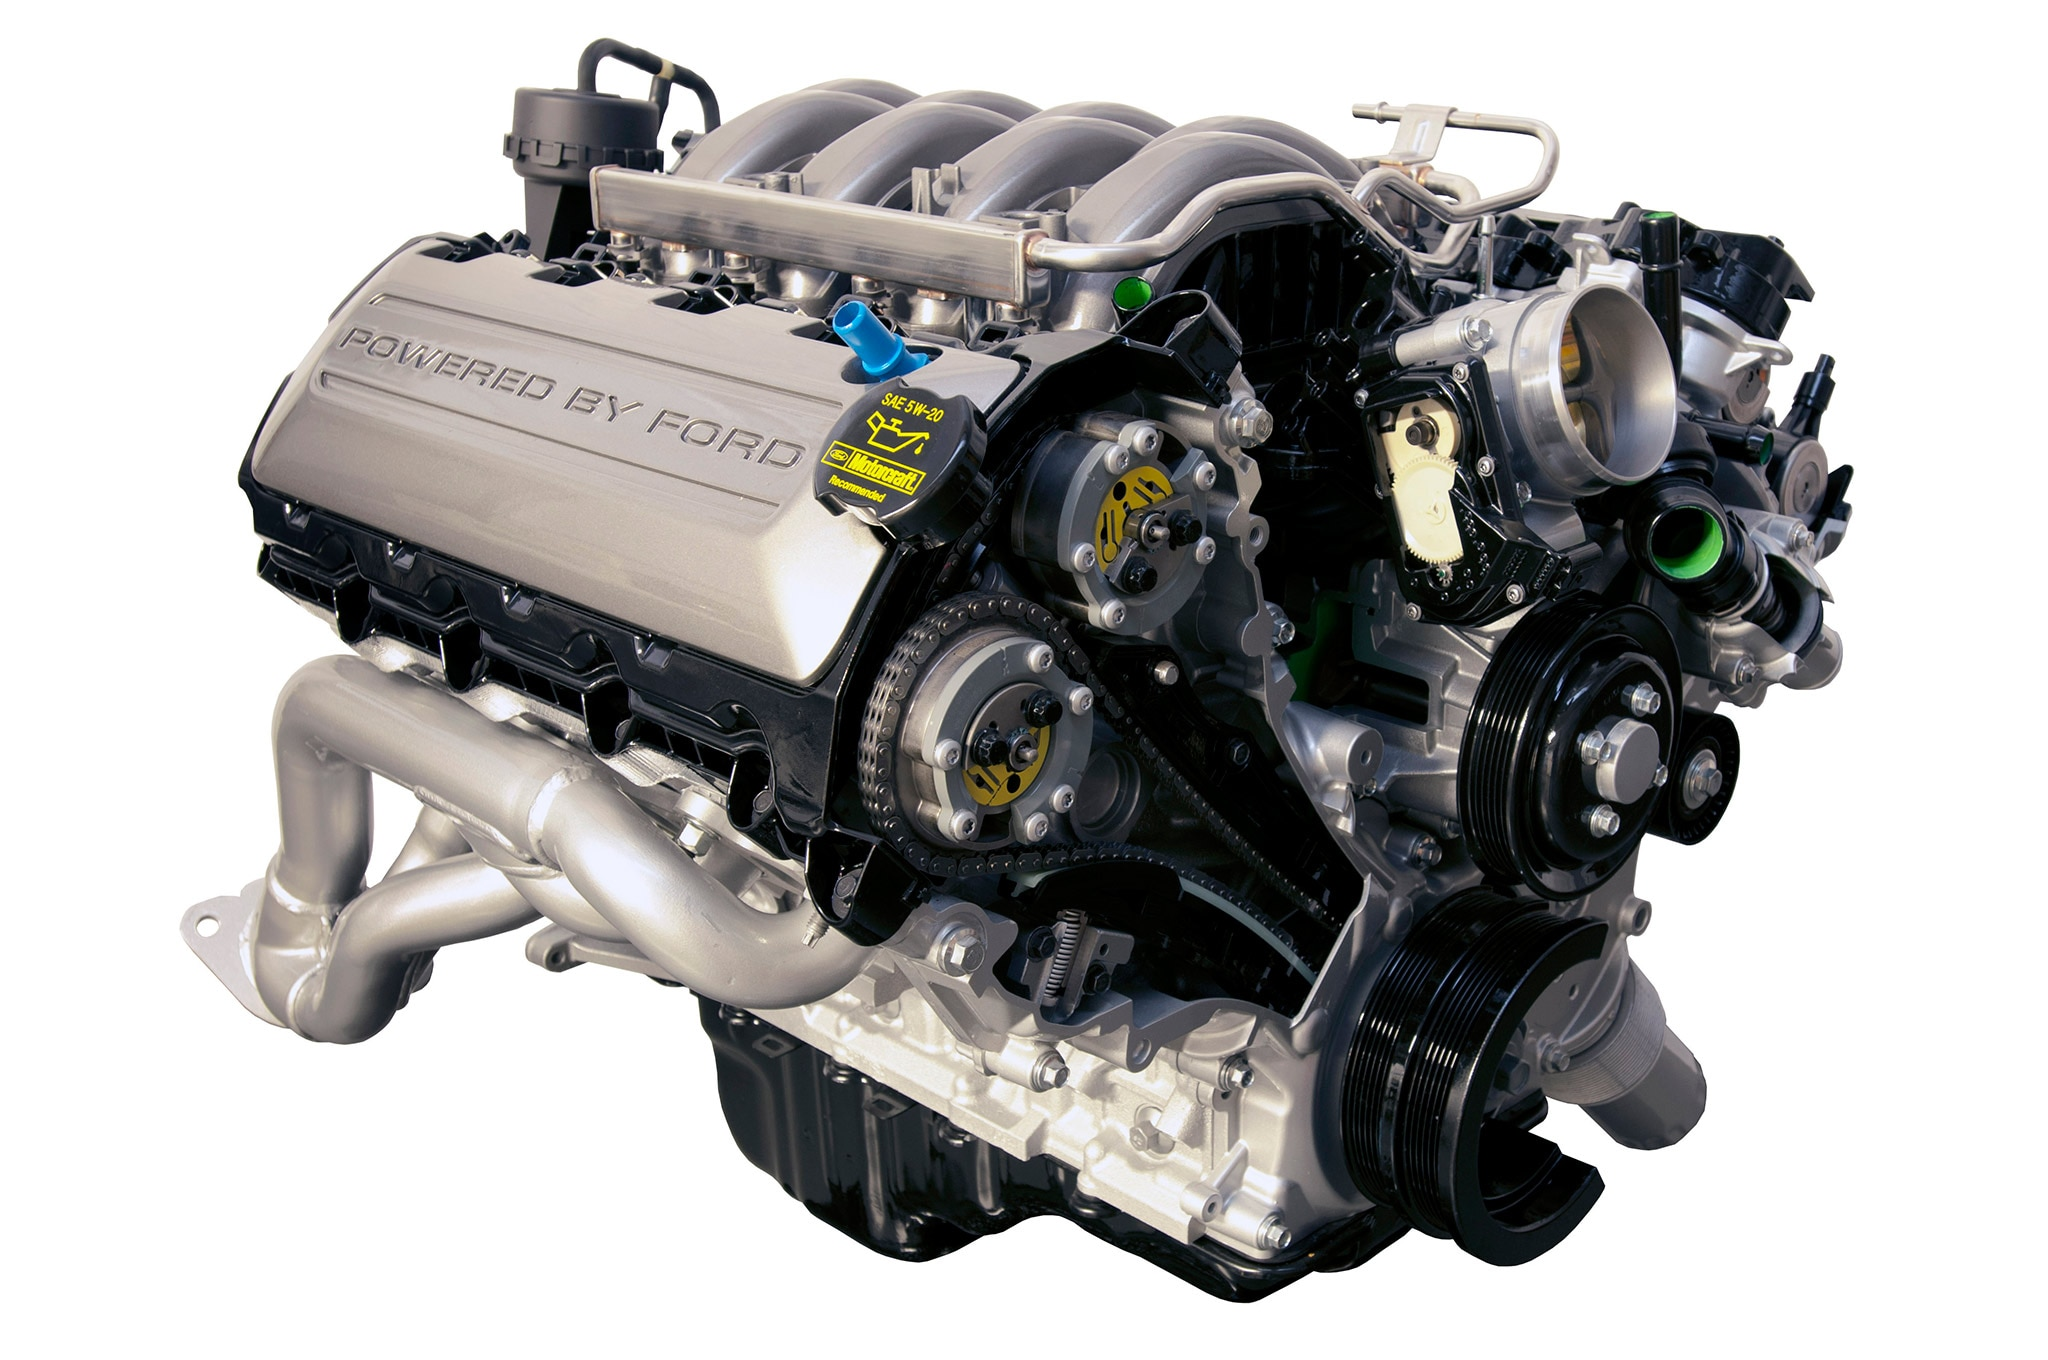 2015 Ford Mustang 32 5 0 Coyote V8 Engine Photo 111220400 Video